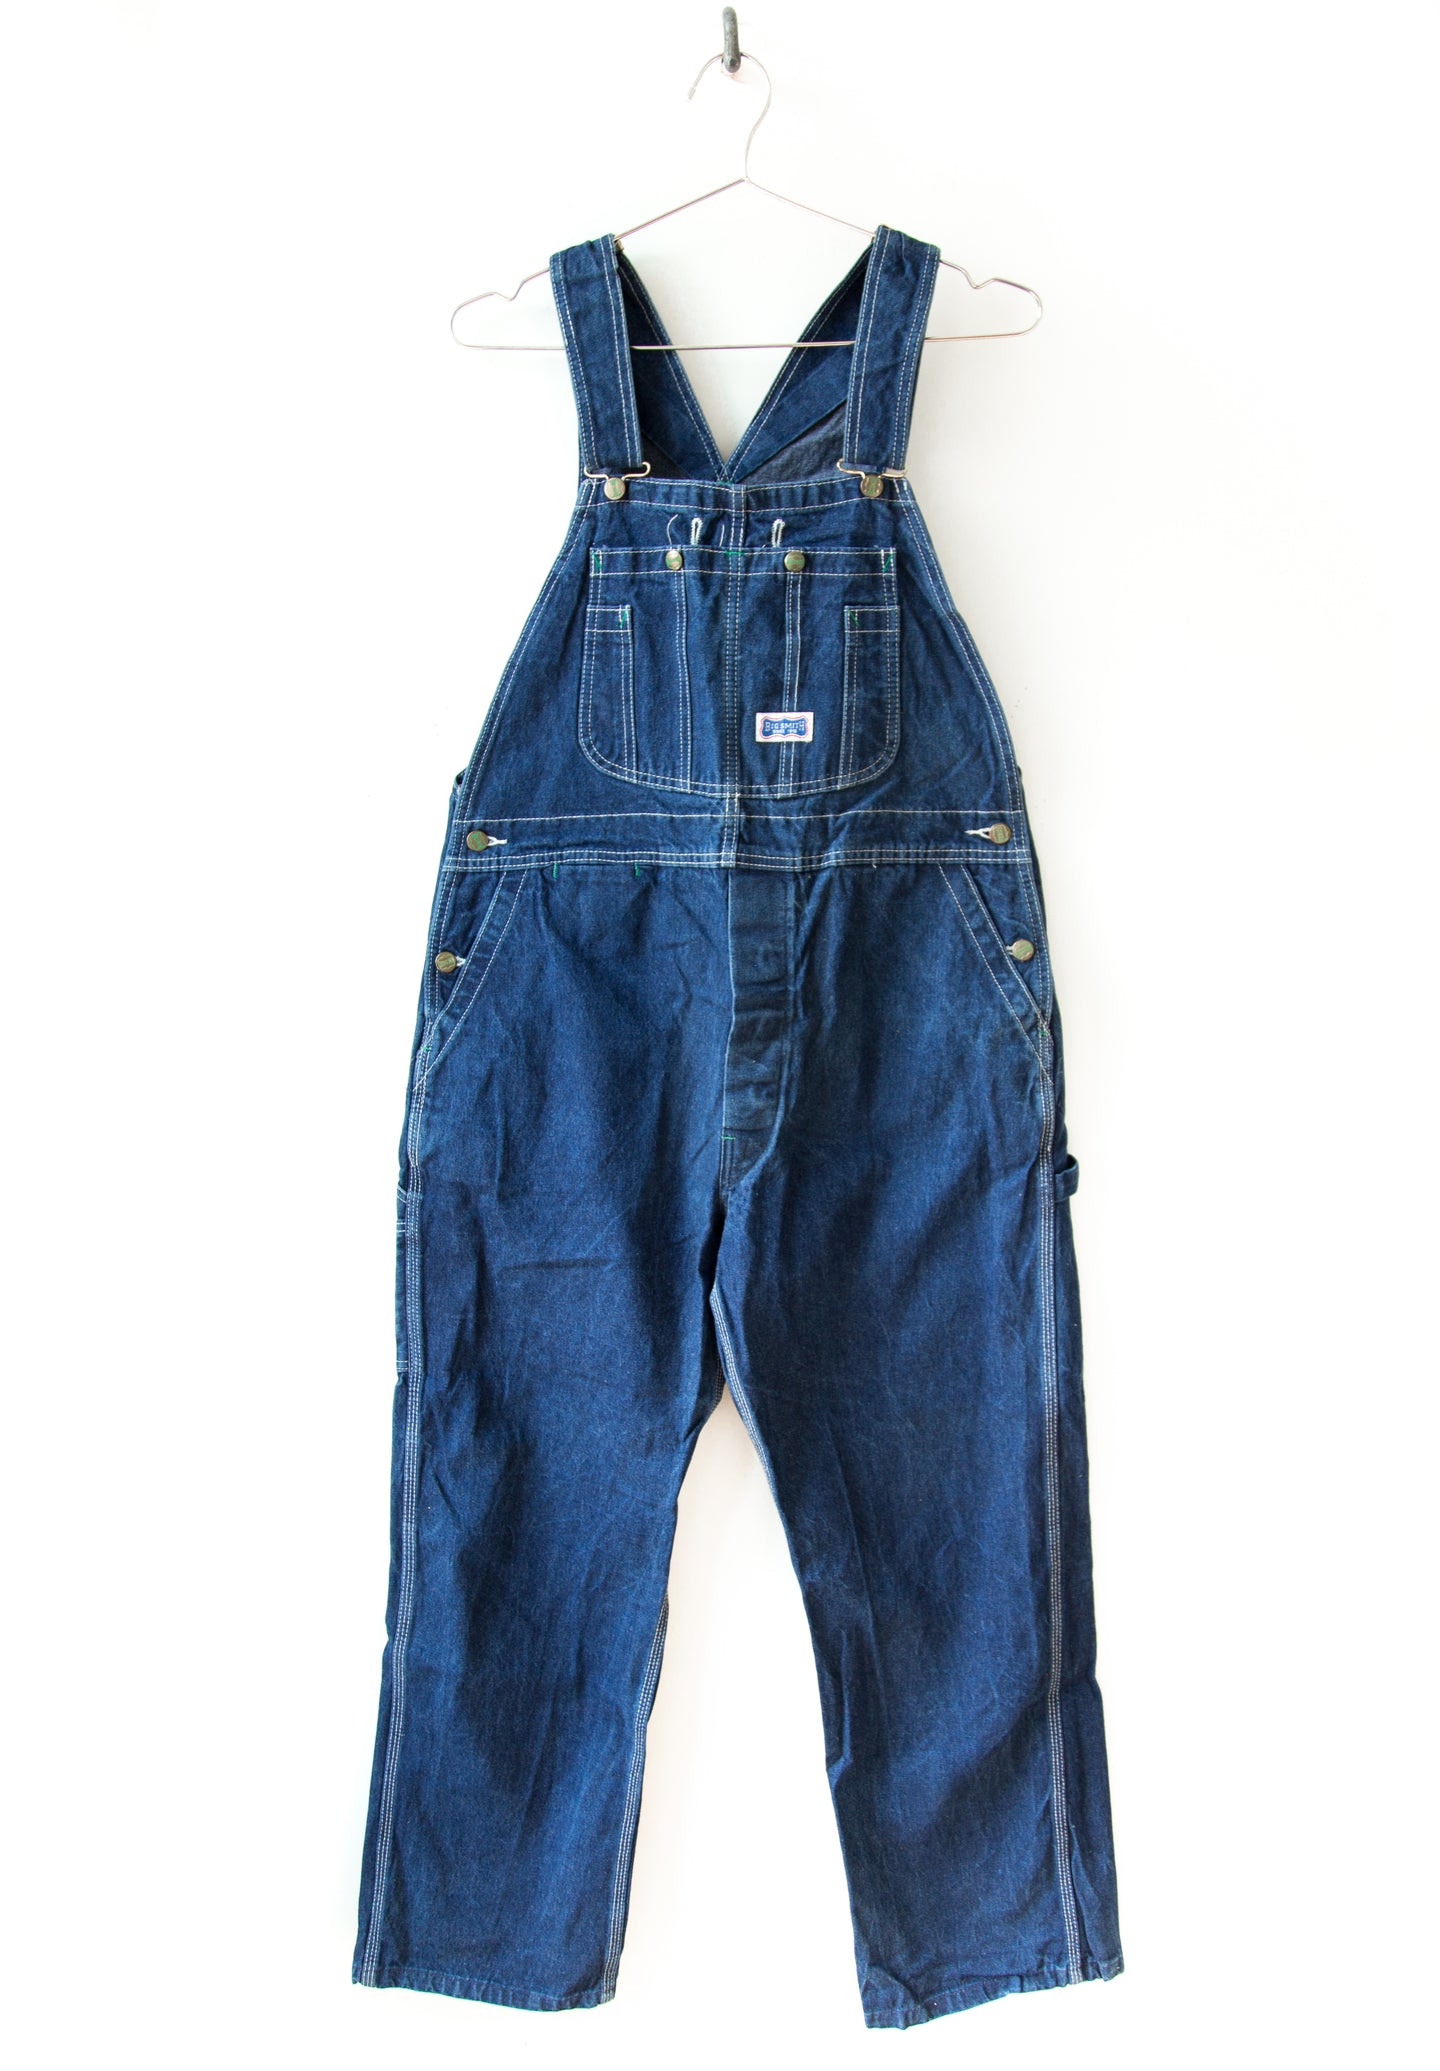 Big Smith Green Button Overalls